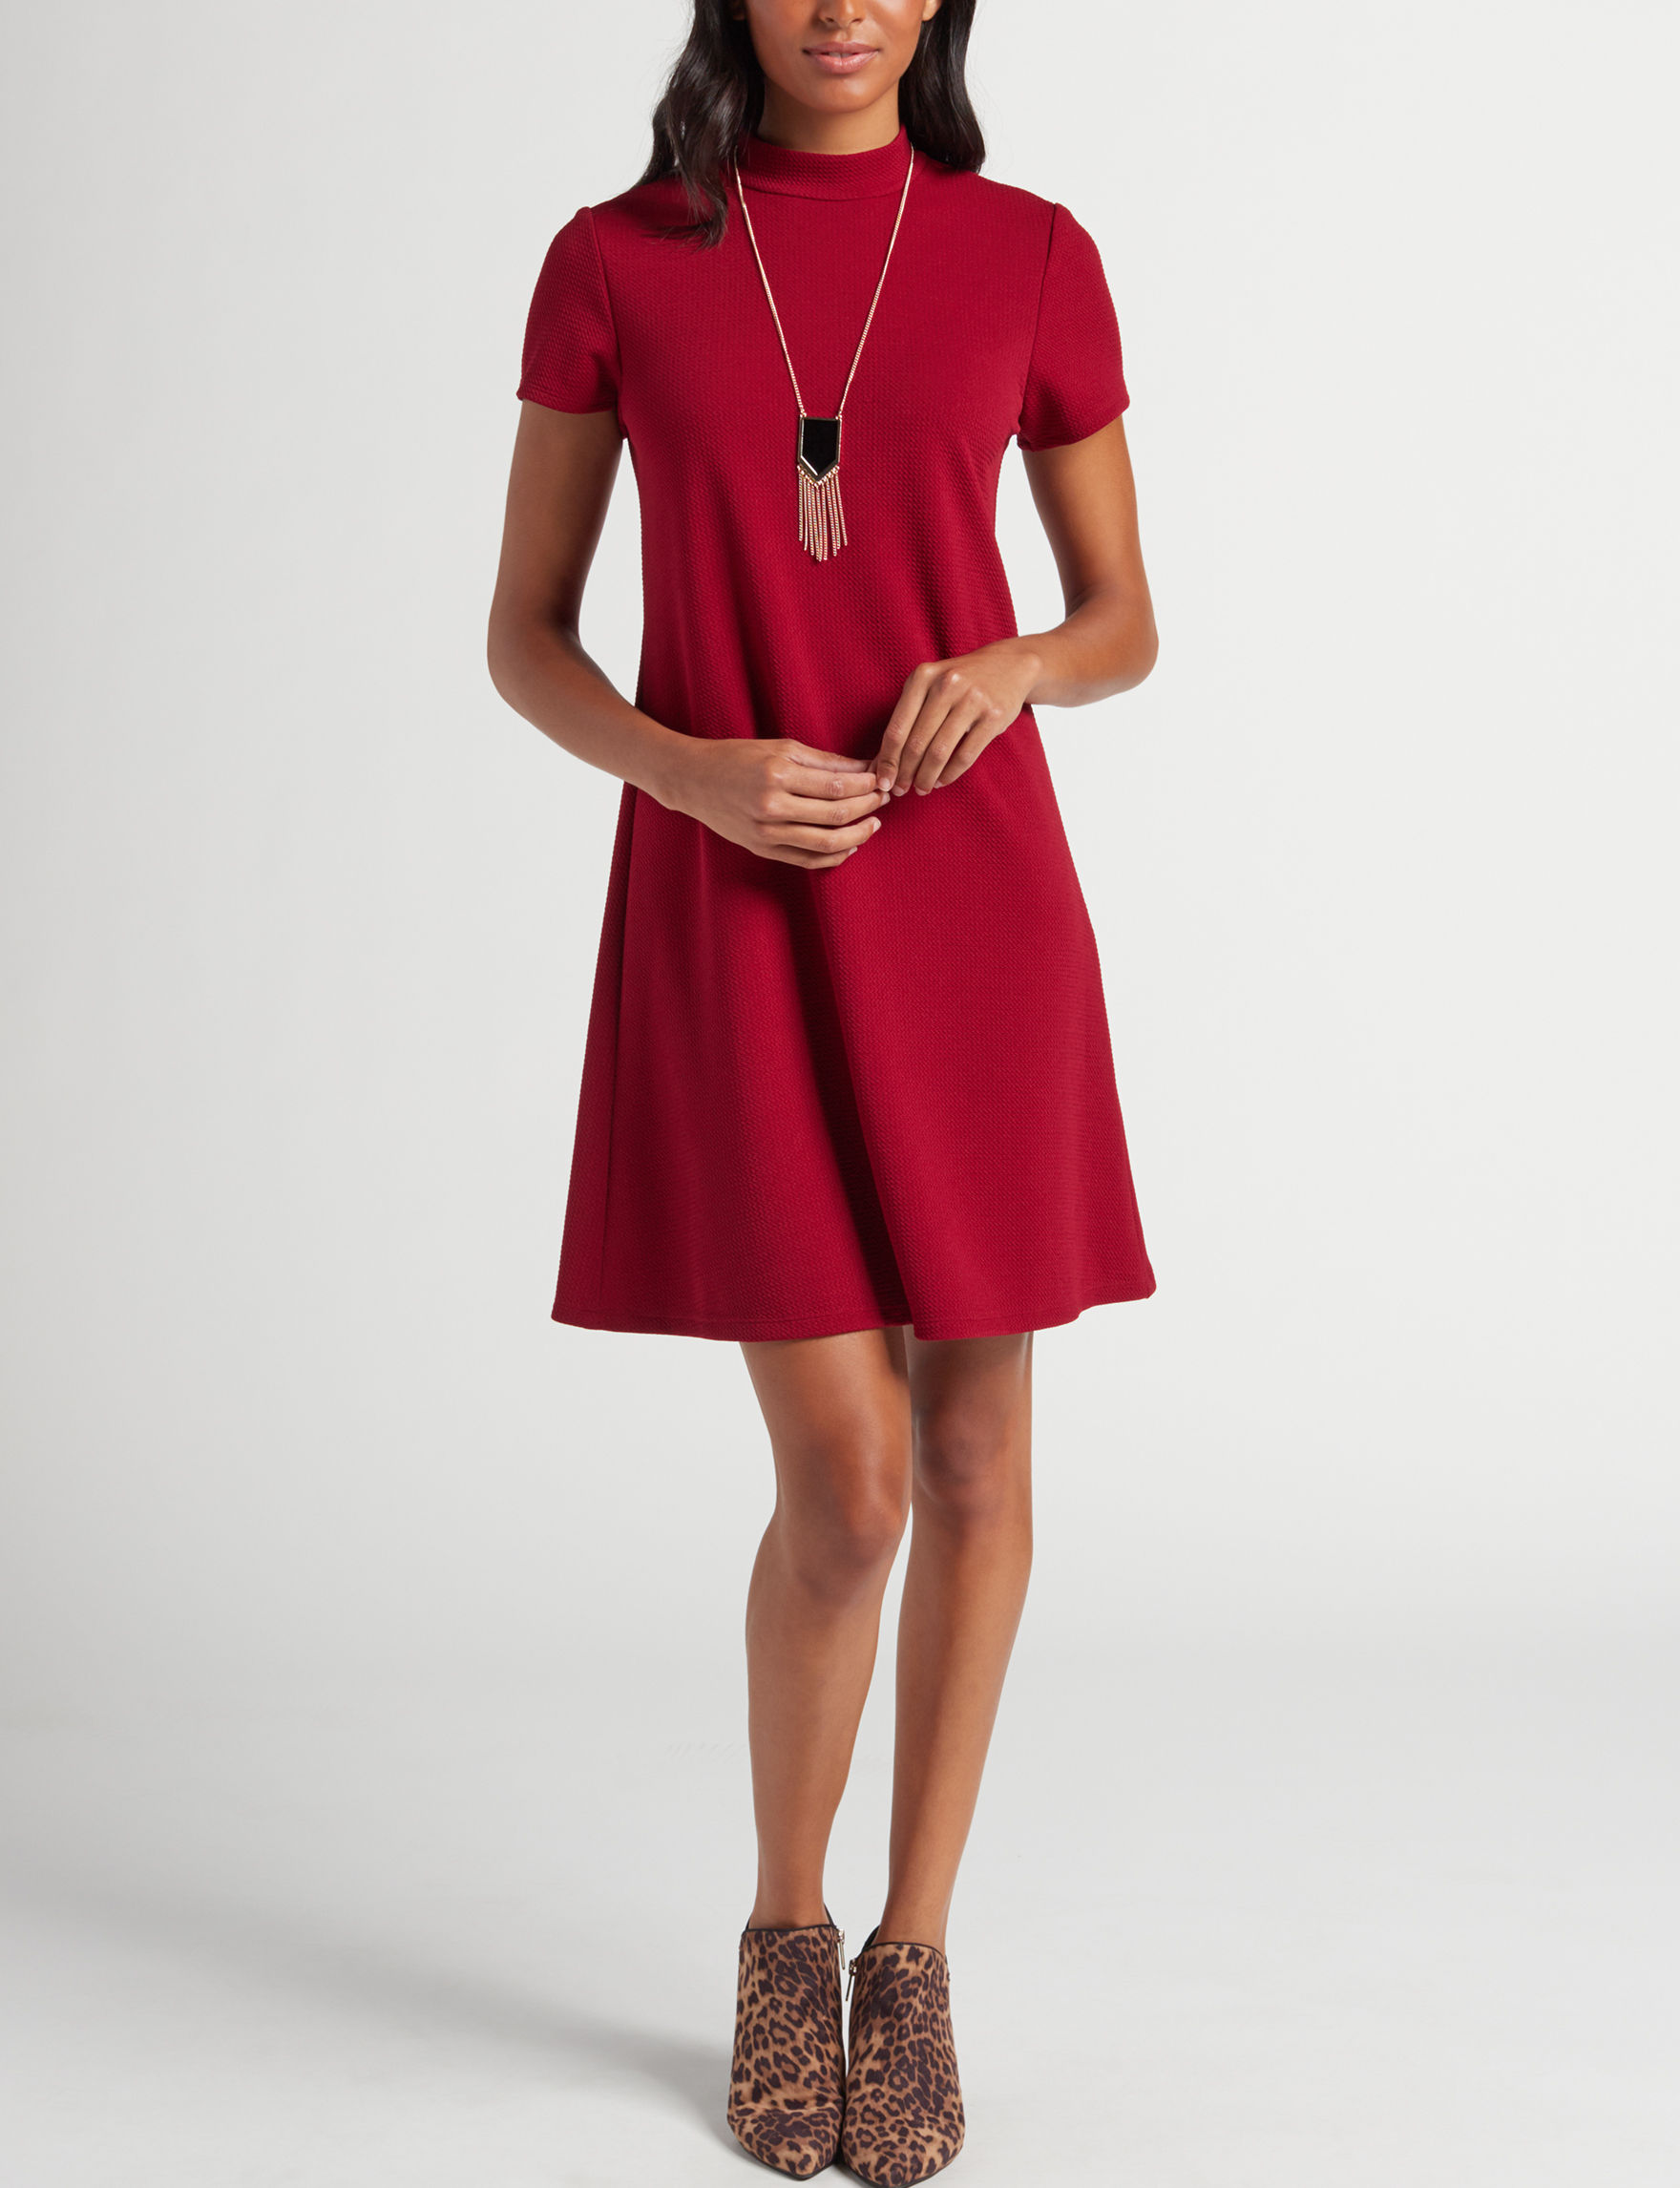 A. Byer Wine Everyday & Casual Shift Dresses